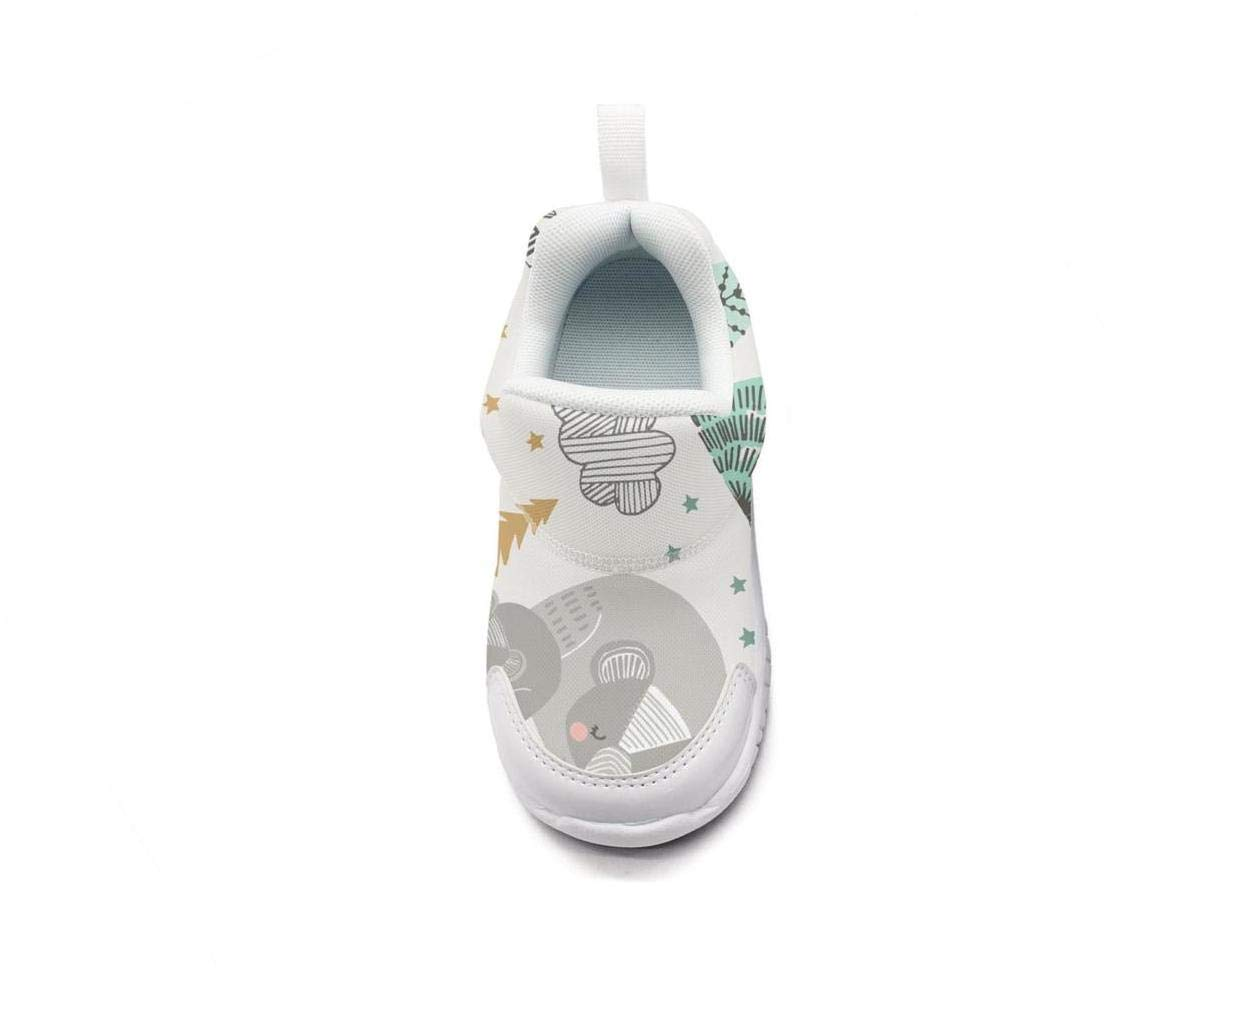 ONEYUAN Children Cute Sleepy Fox Bears Owls Kid Casual Lightweight Sport Shoes Sneakers Walking Athletic Shoes